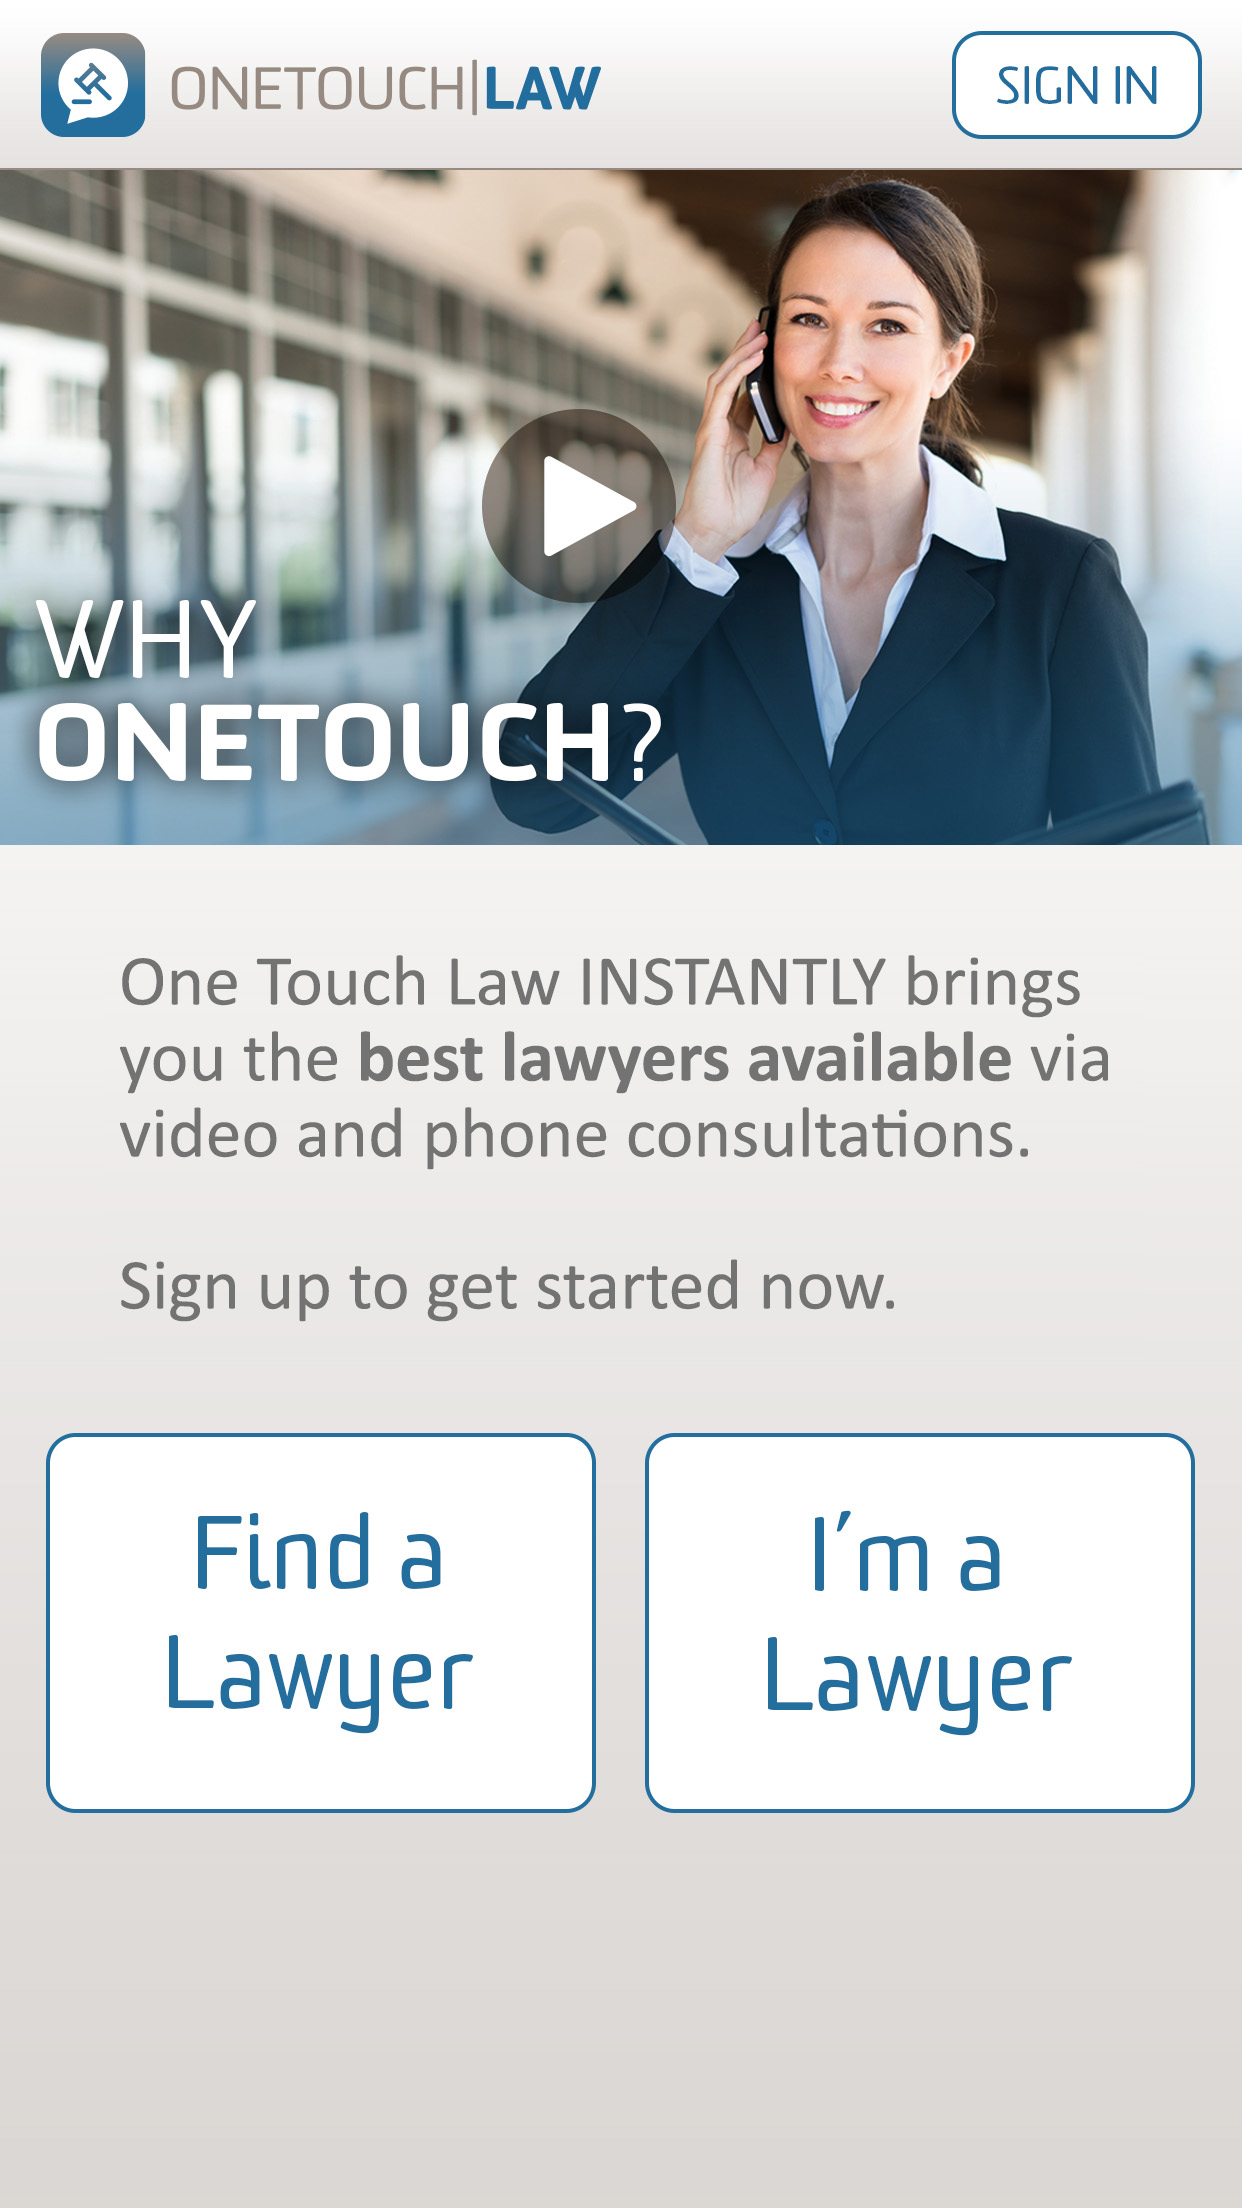 One Touch Law Mobile App for Attorneys Expands Throughout Texas